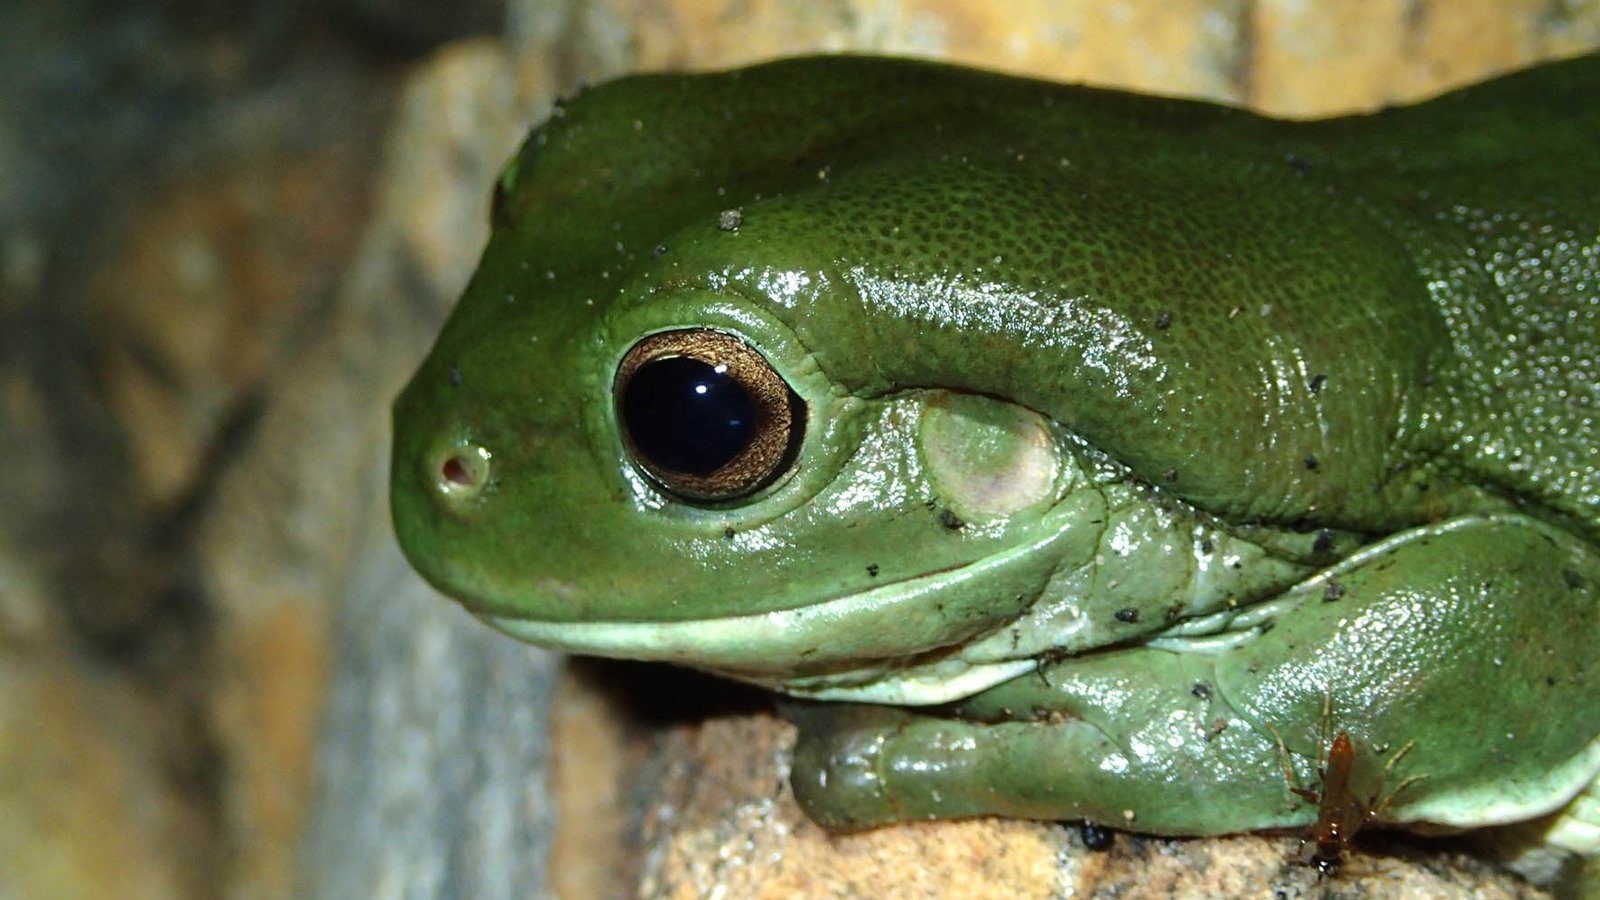 The Aussie Green Tree Frog's disappearing act from Sydney